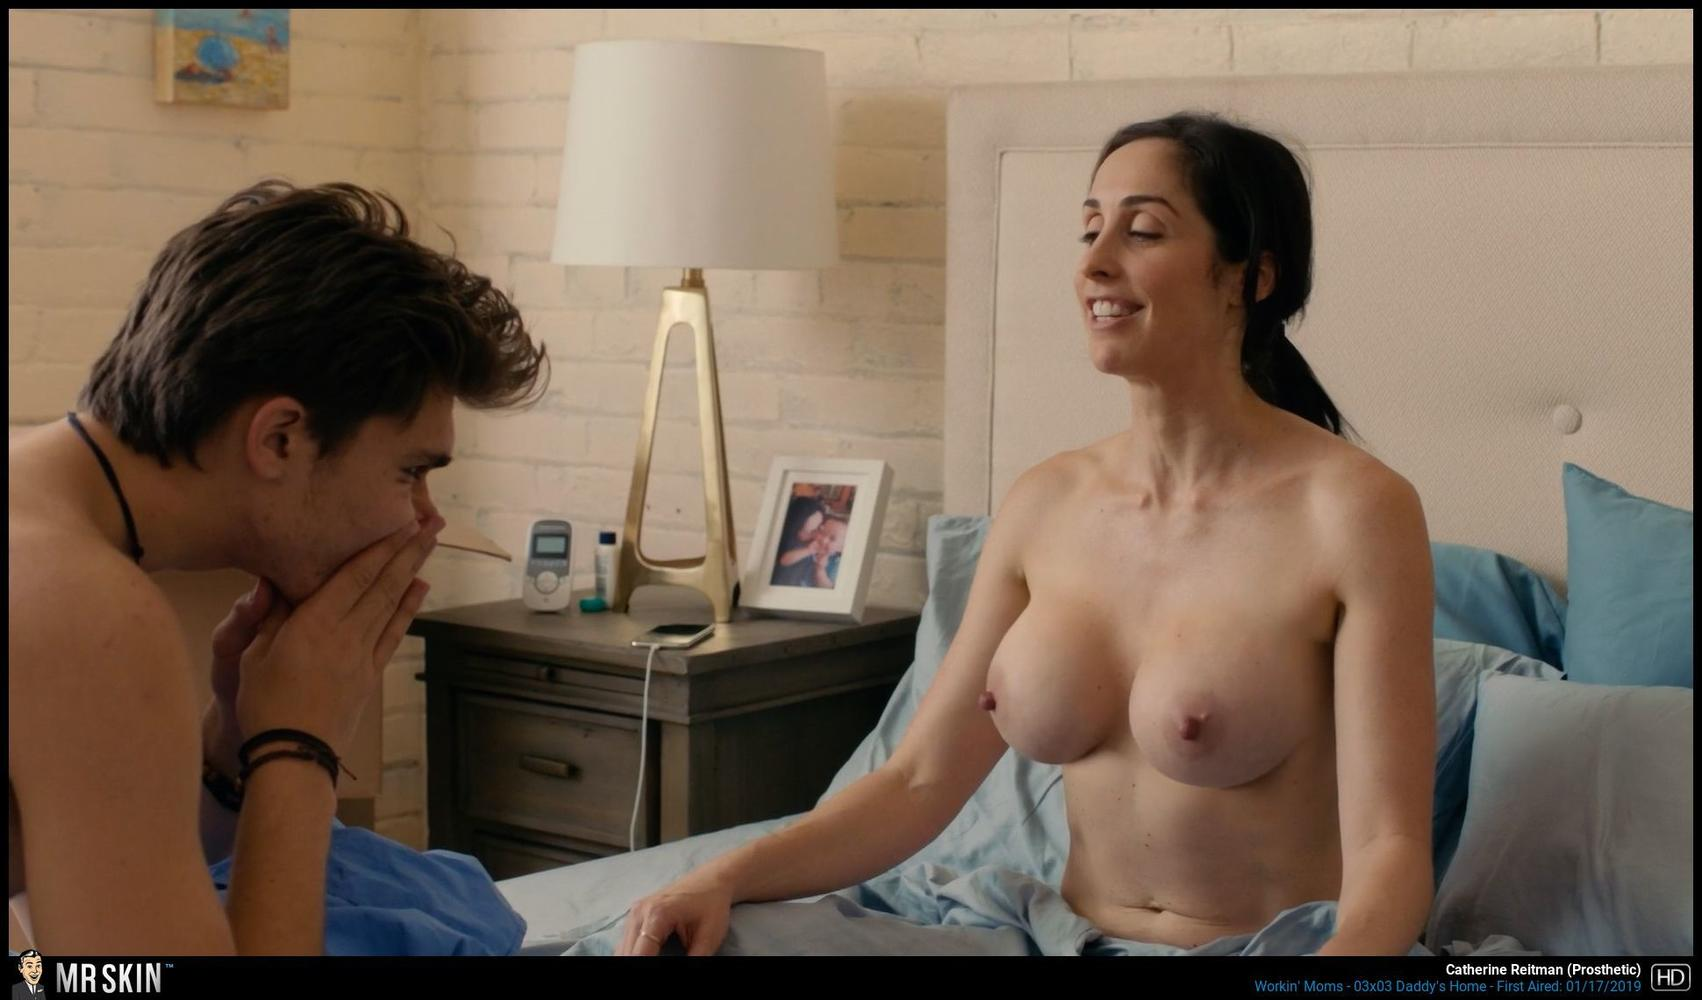 Amy Shiels Nude skinstant video selections: the breast of the rest of